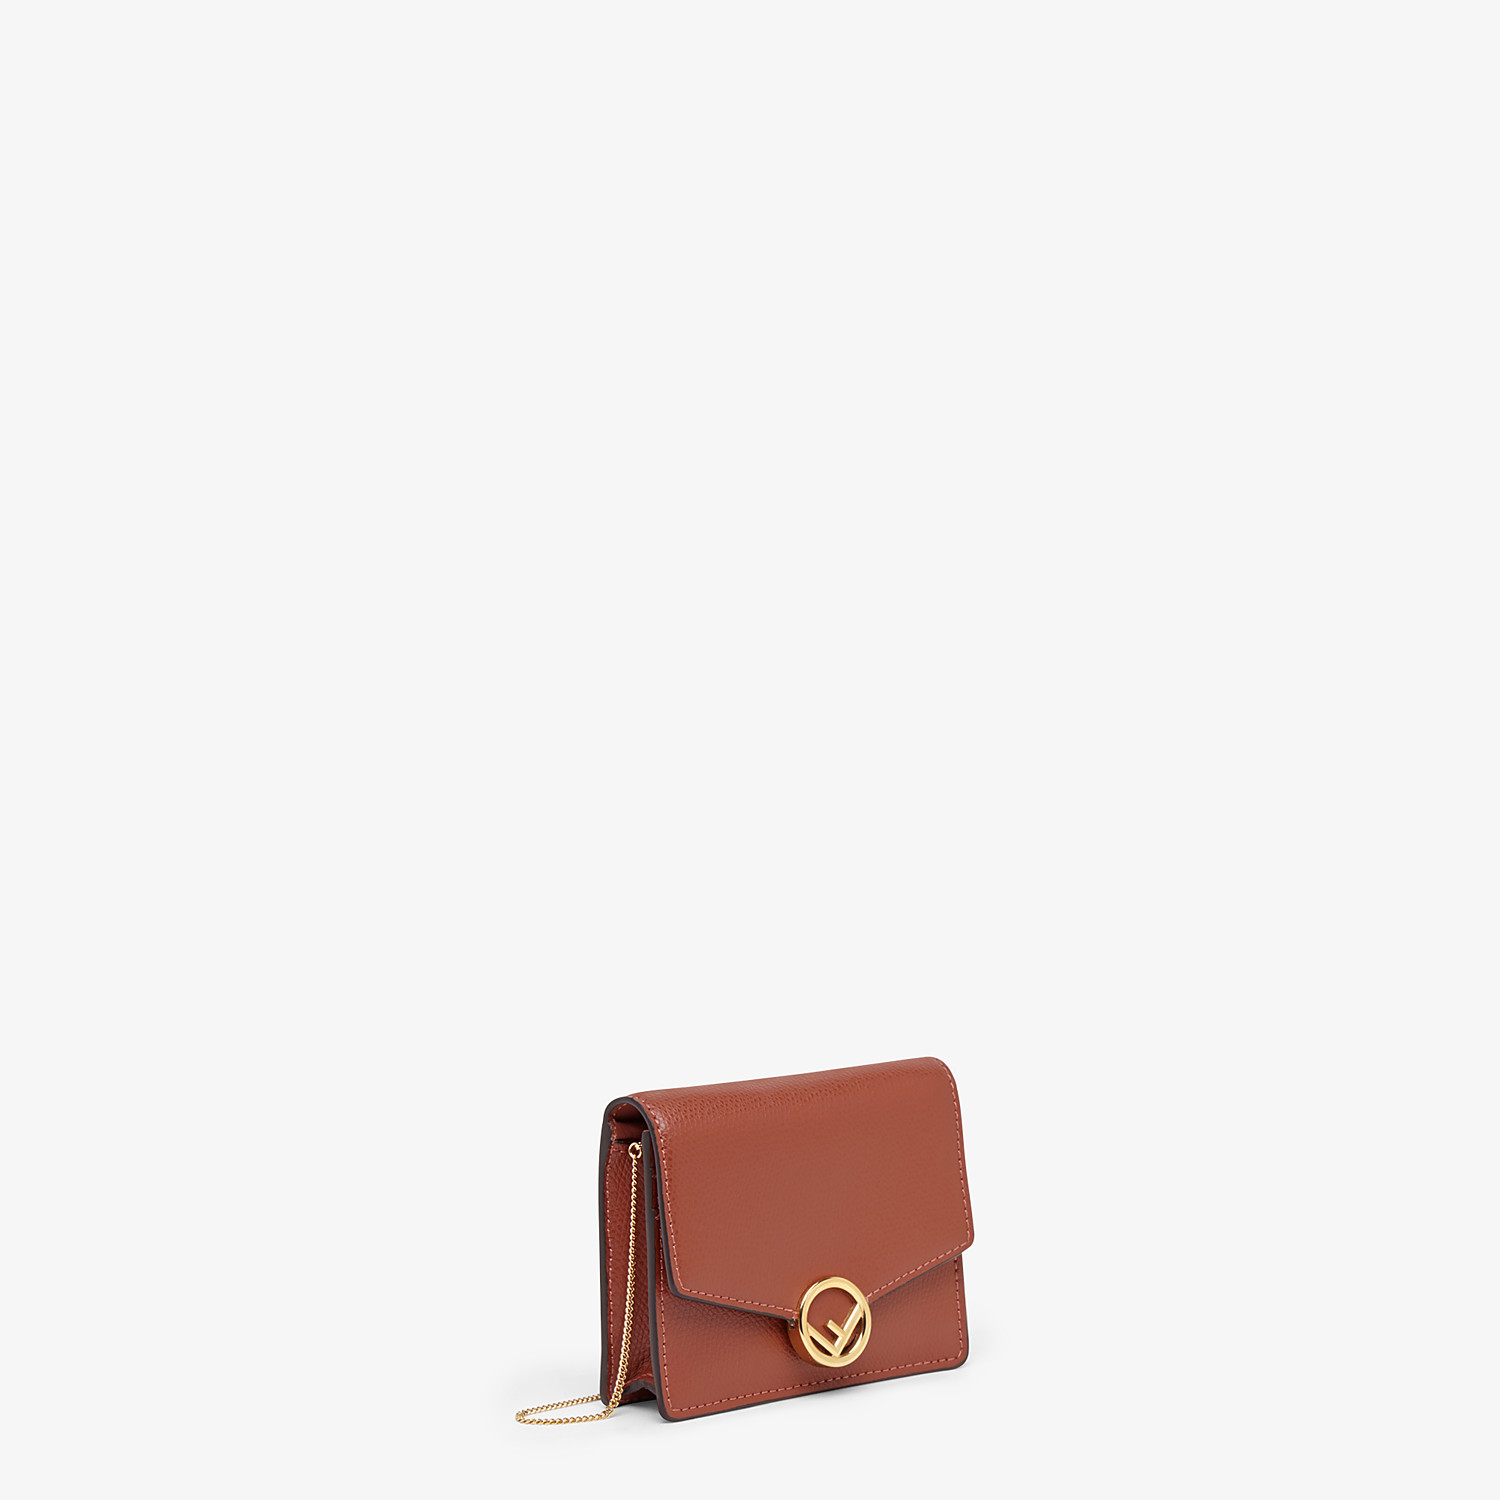 FENDI WALLET ON CHAIN - Red leather mini-bag - view 2 detail